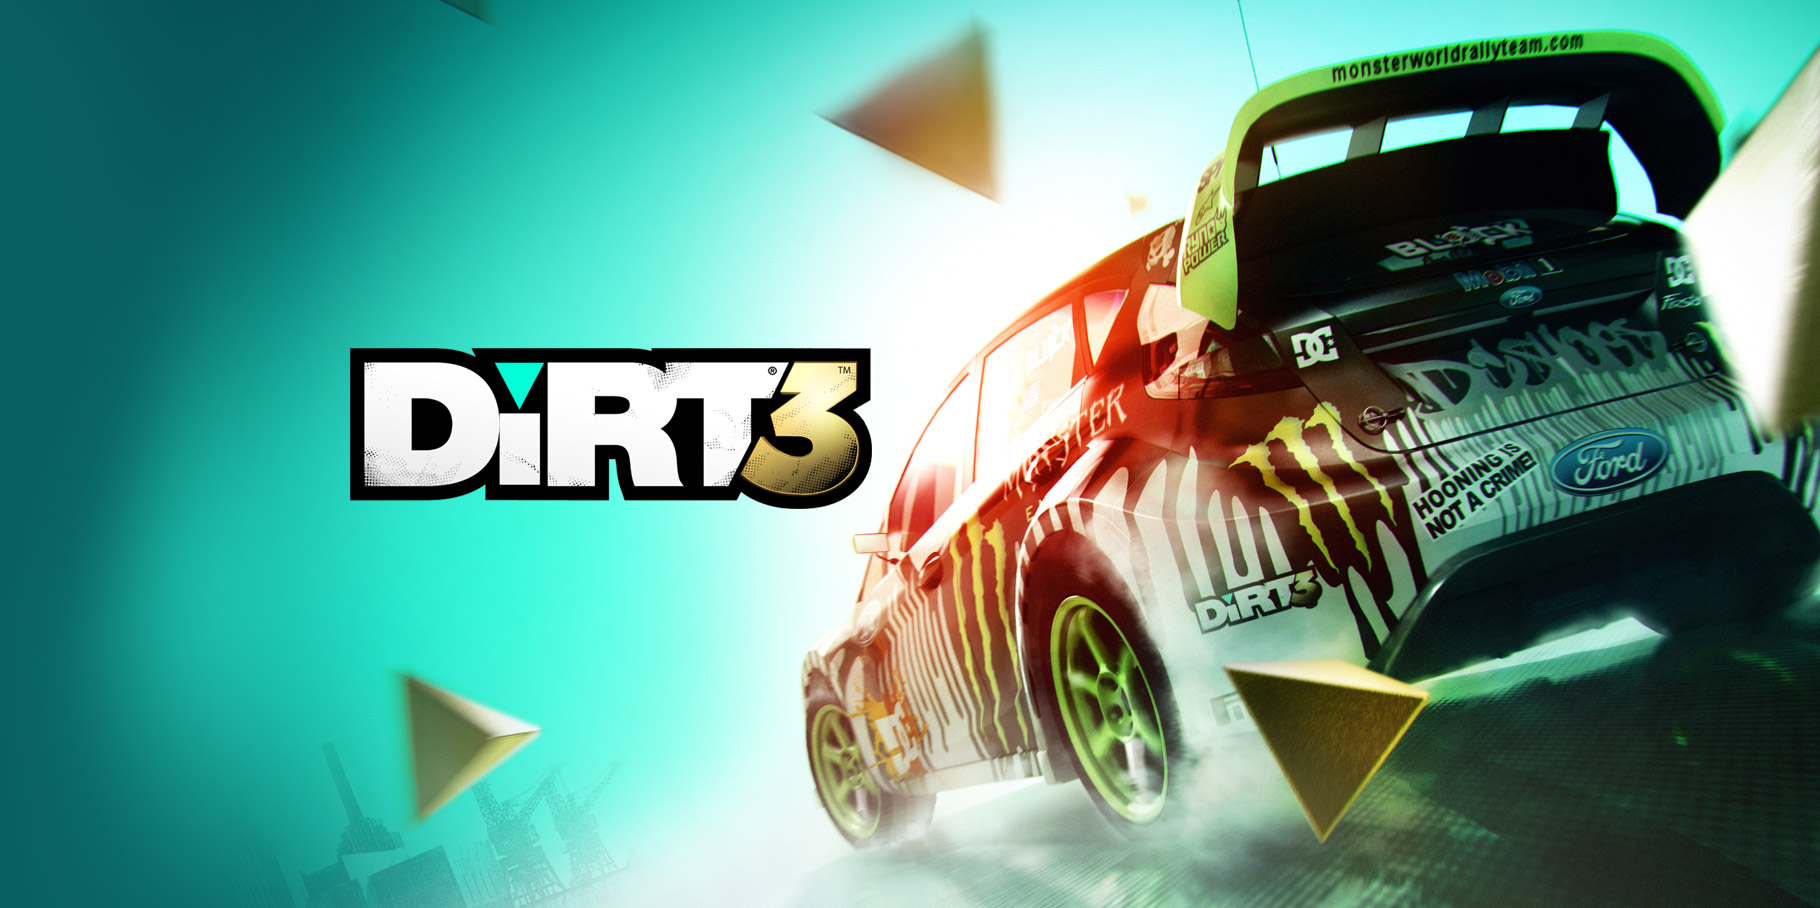 Artwork for DiRT 3